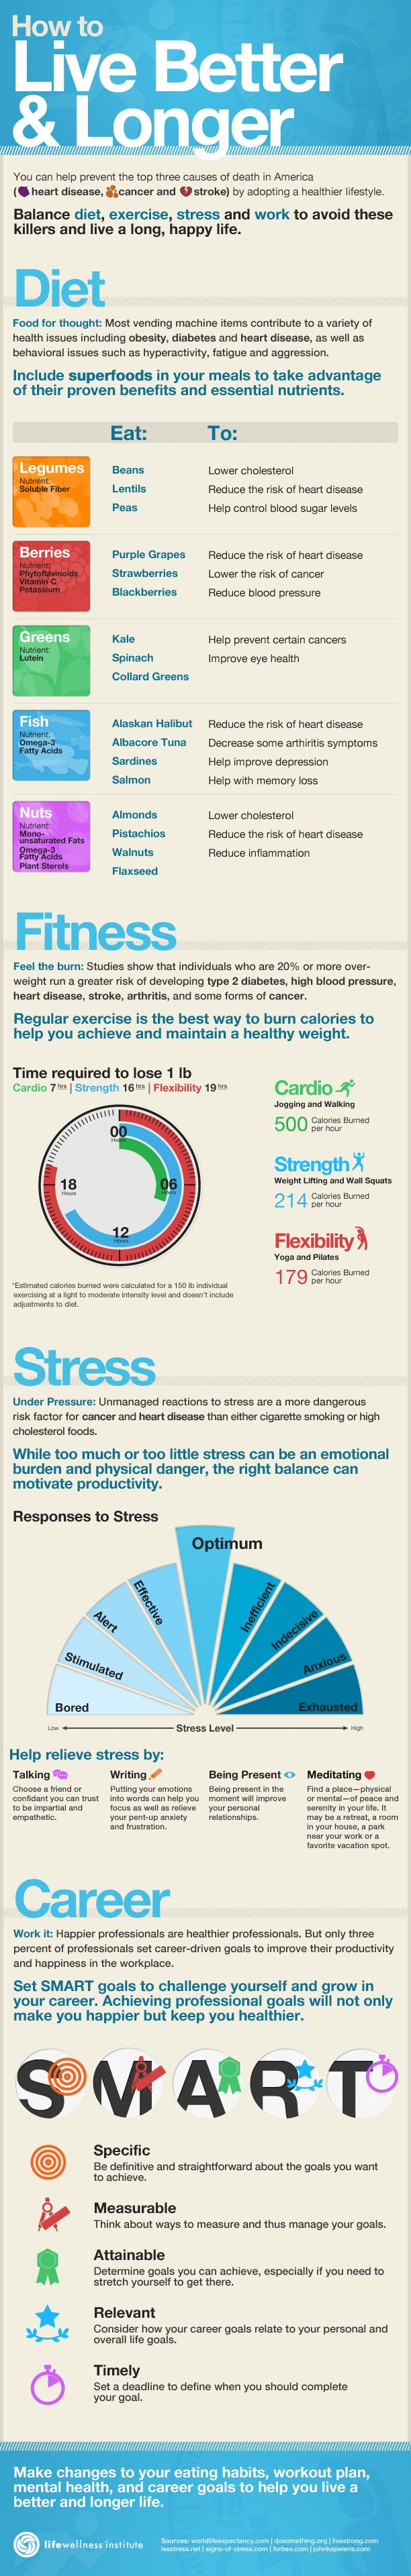 How to Live Stronger, Longer, and Better - Infographic